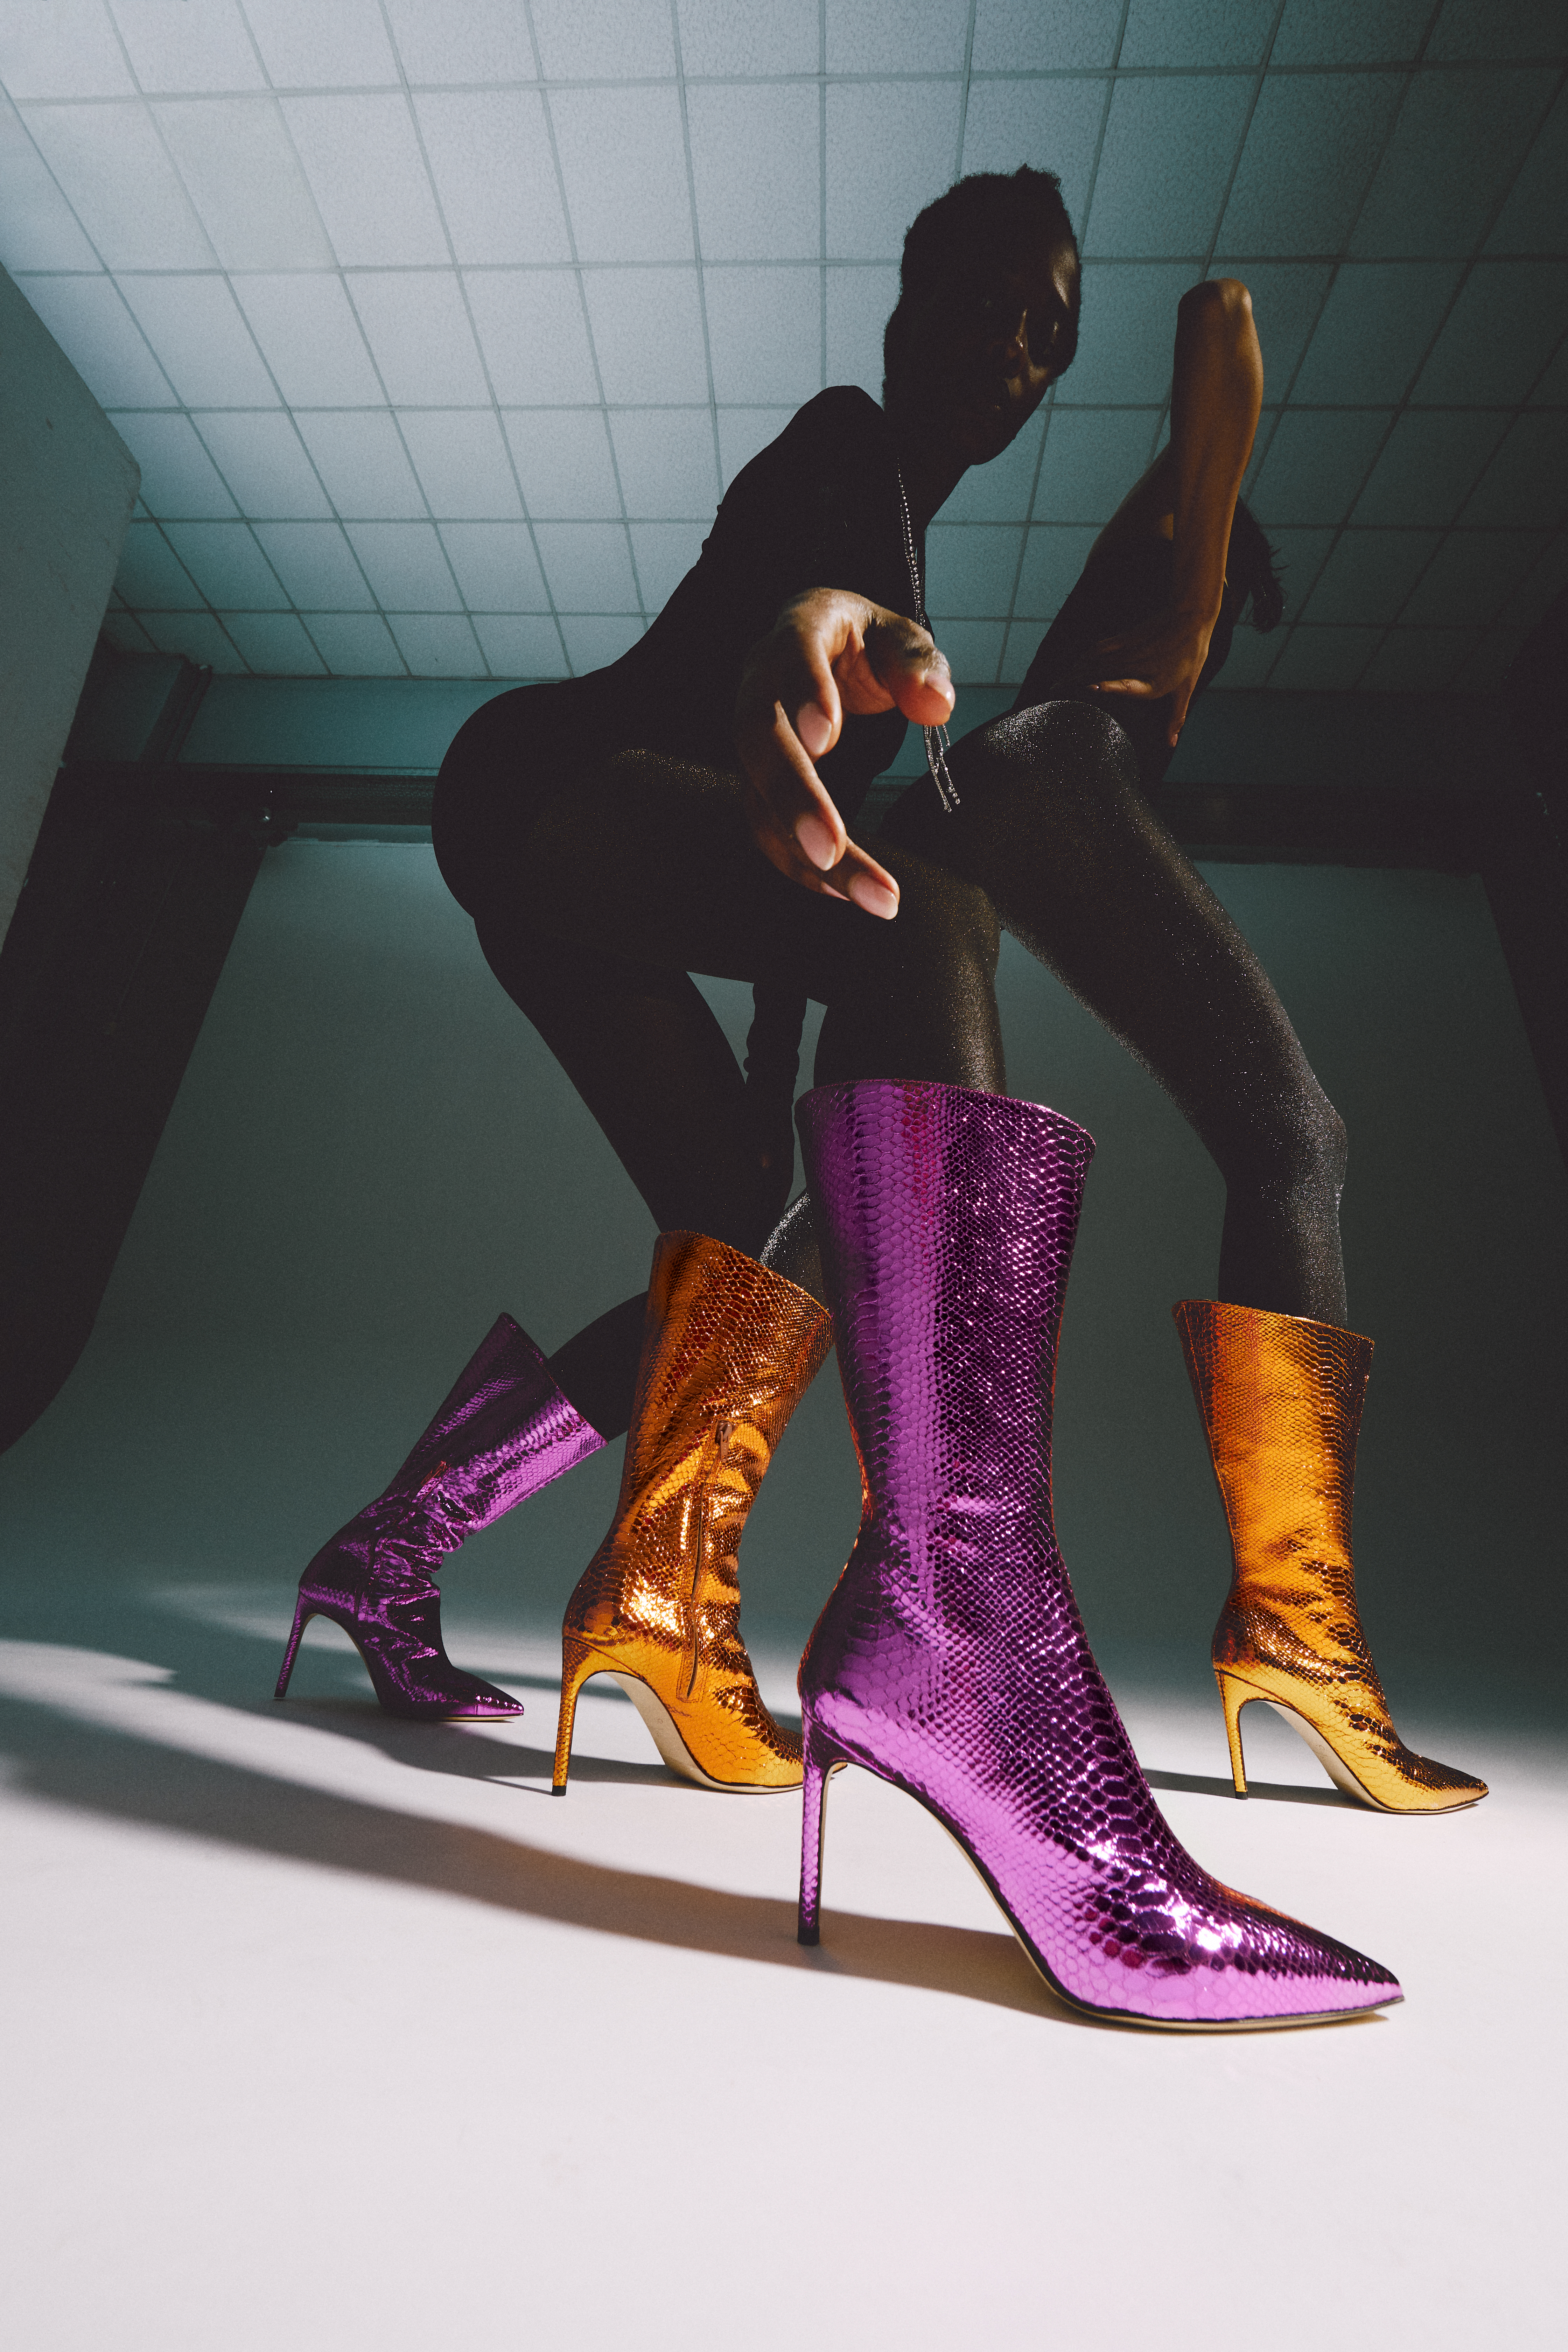 Shimmering booties from the Giannico fall 2021 collection.